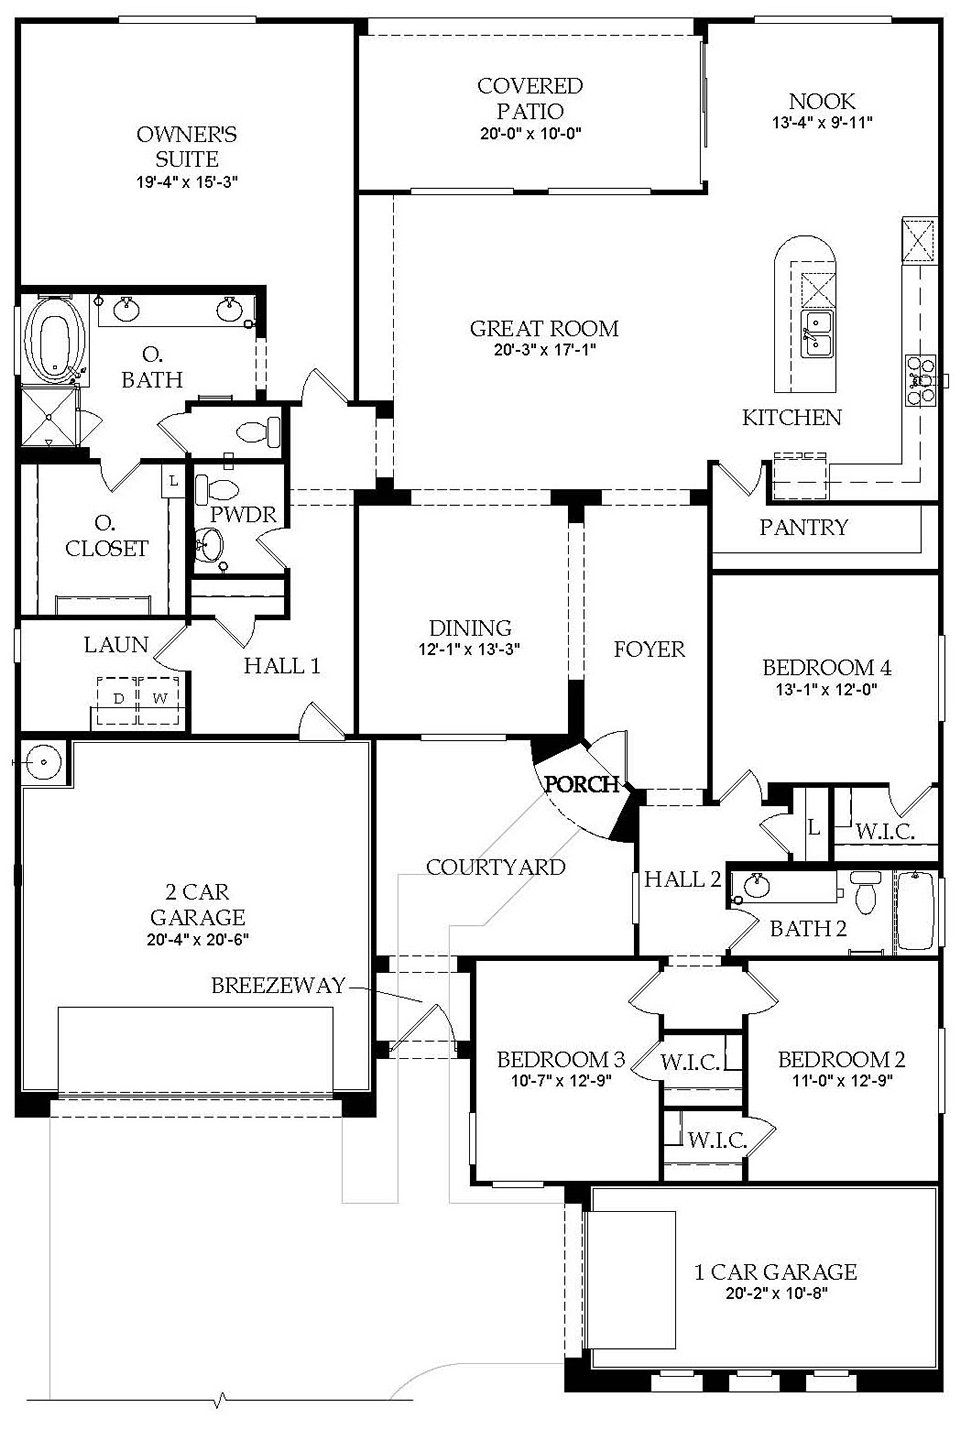 Superb Pulte Home Plans #1 Pulte Homes Floor Plans | For the Home ...